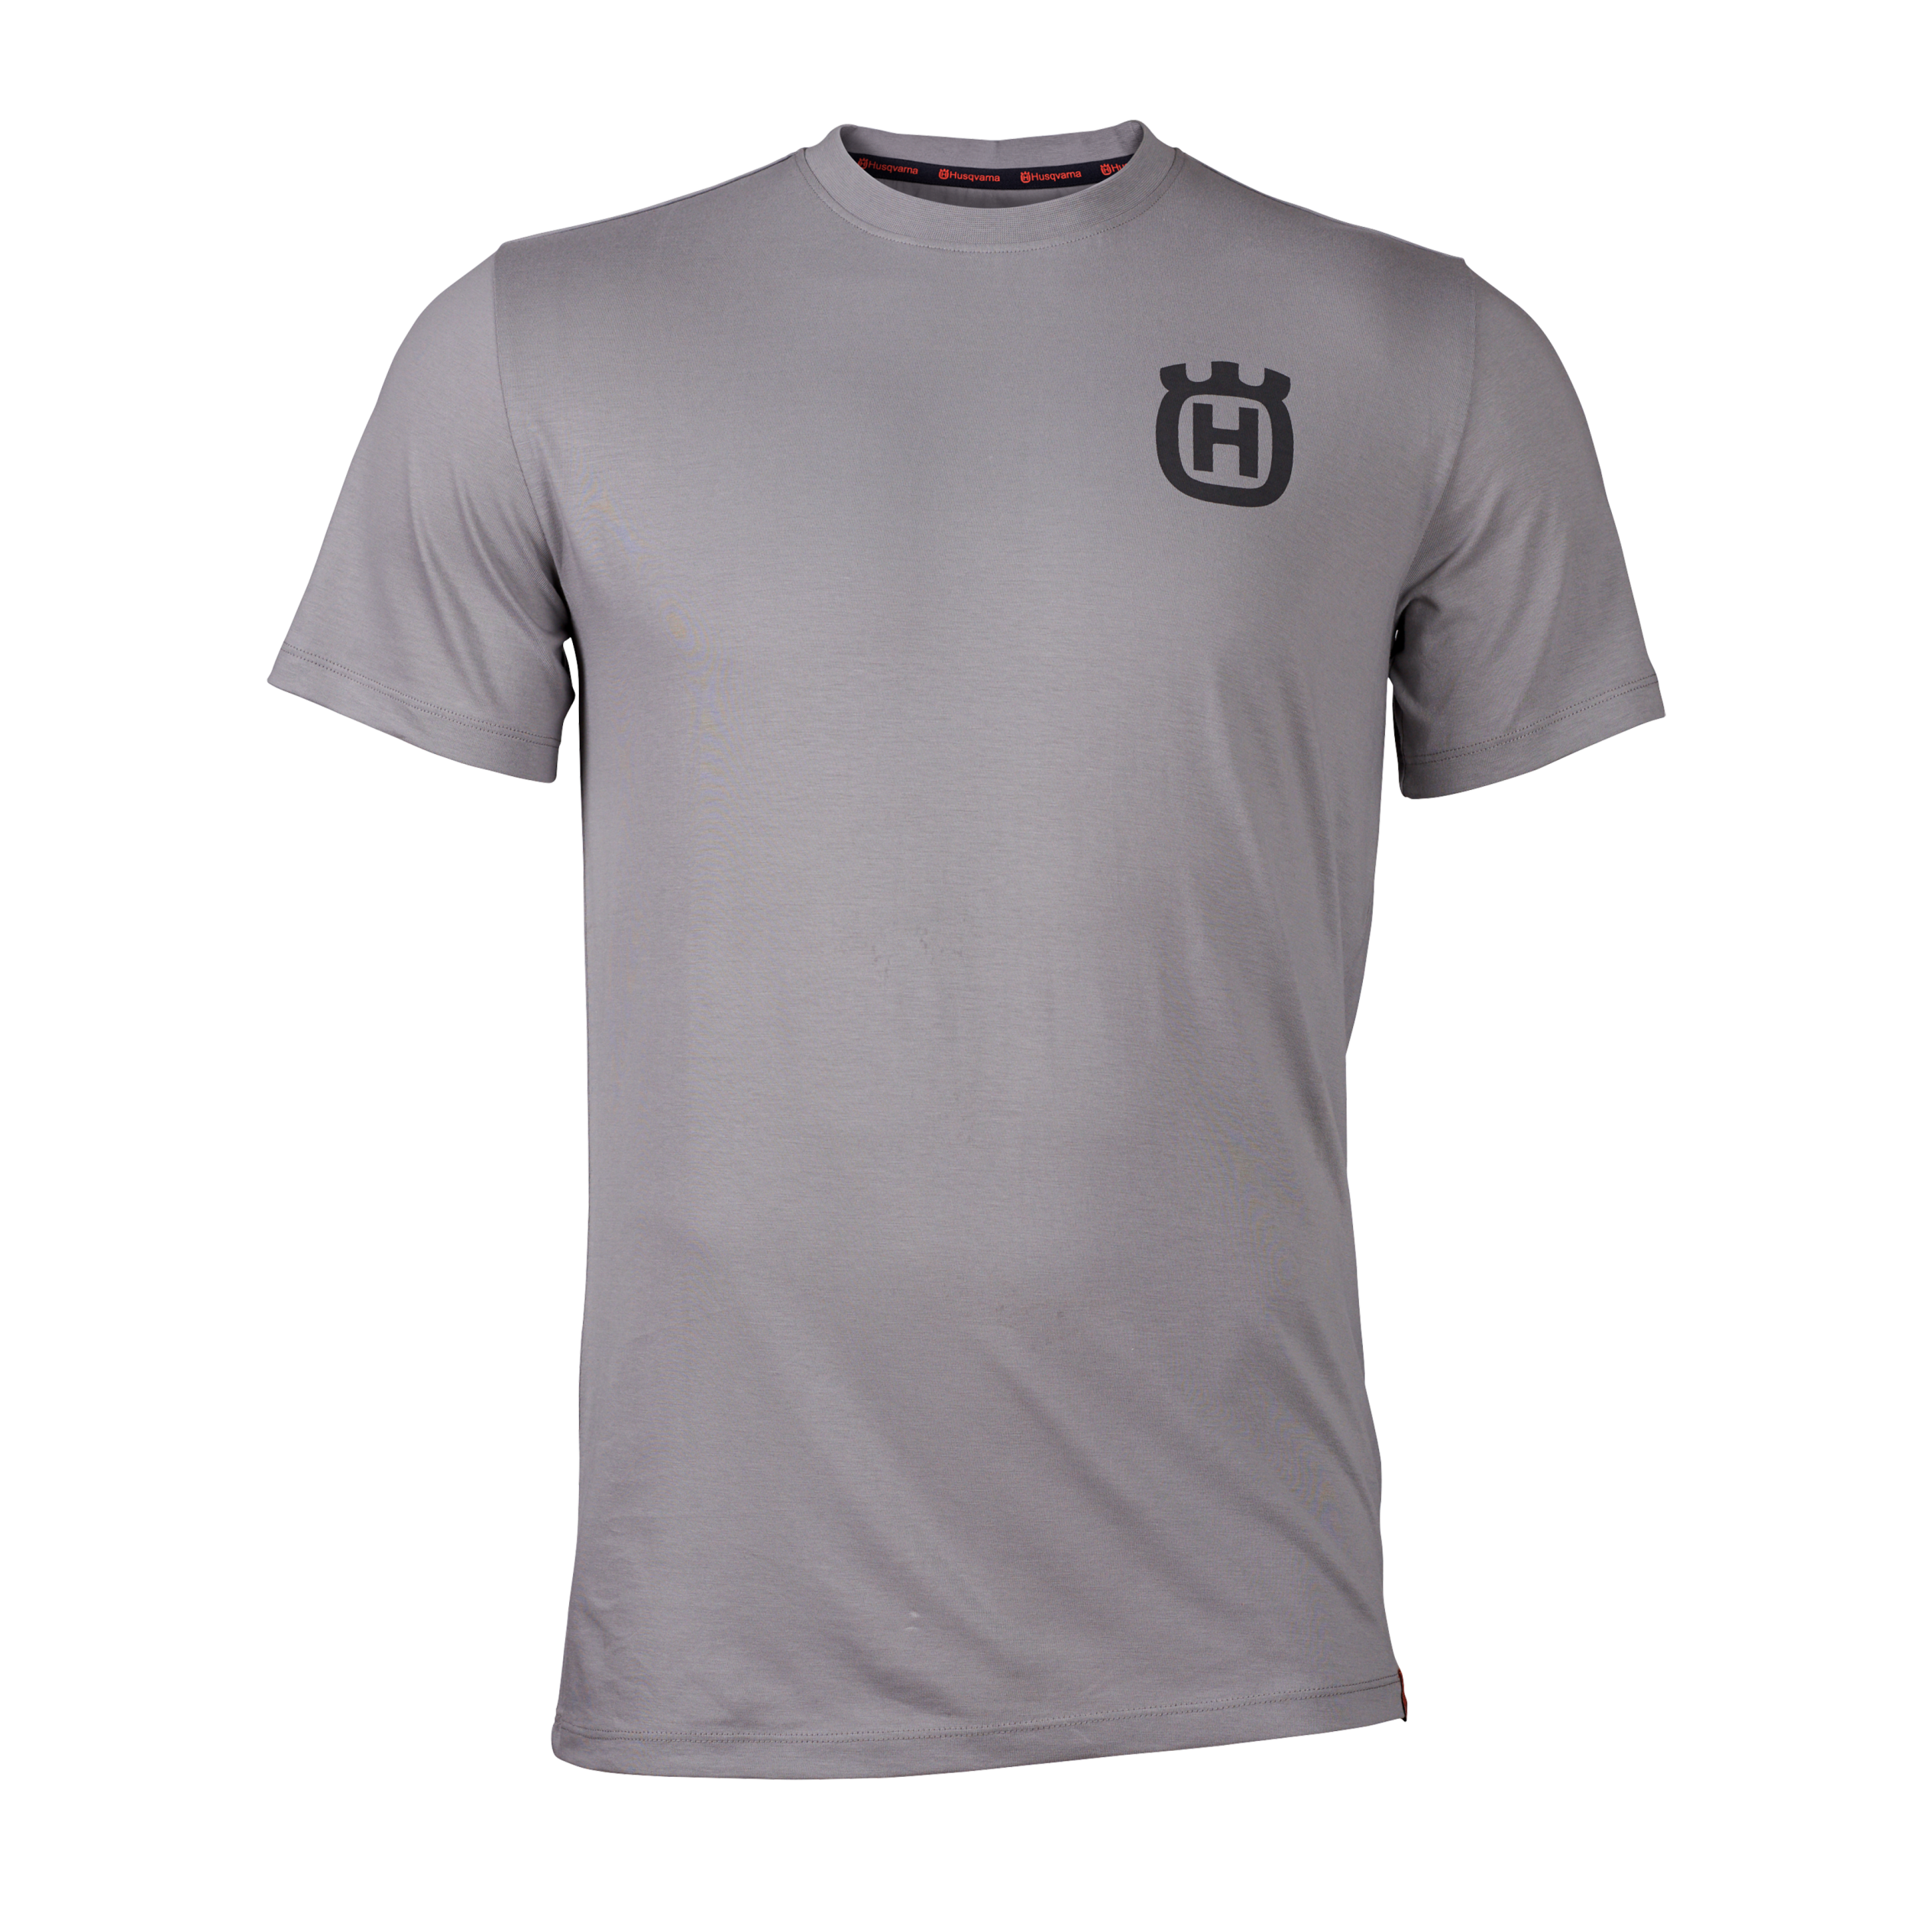 Image for Årgång Short-Sleeve T-Shirt from HusqvarnaB2C